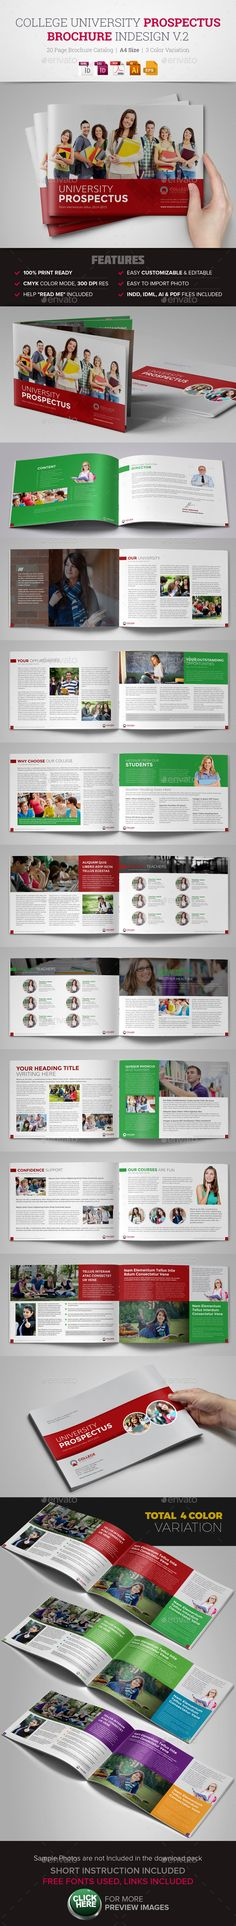 Portfolio Brochure Indesign Template V3 | Template, Vs And V3